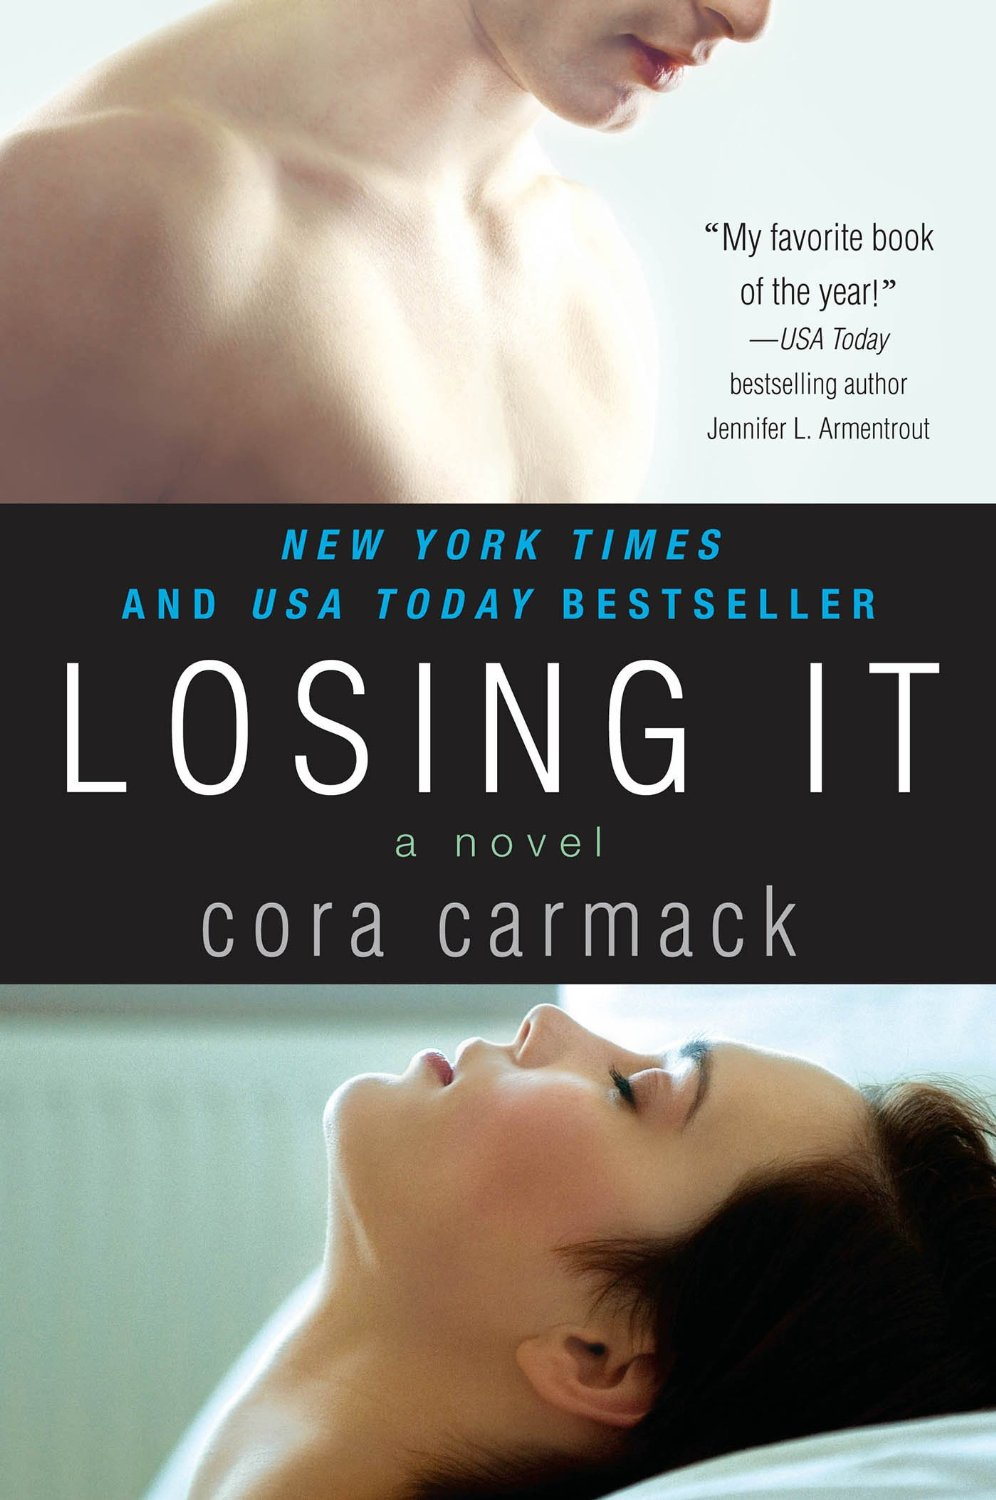 Losing It by Cora Carmack